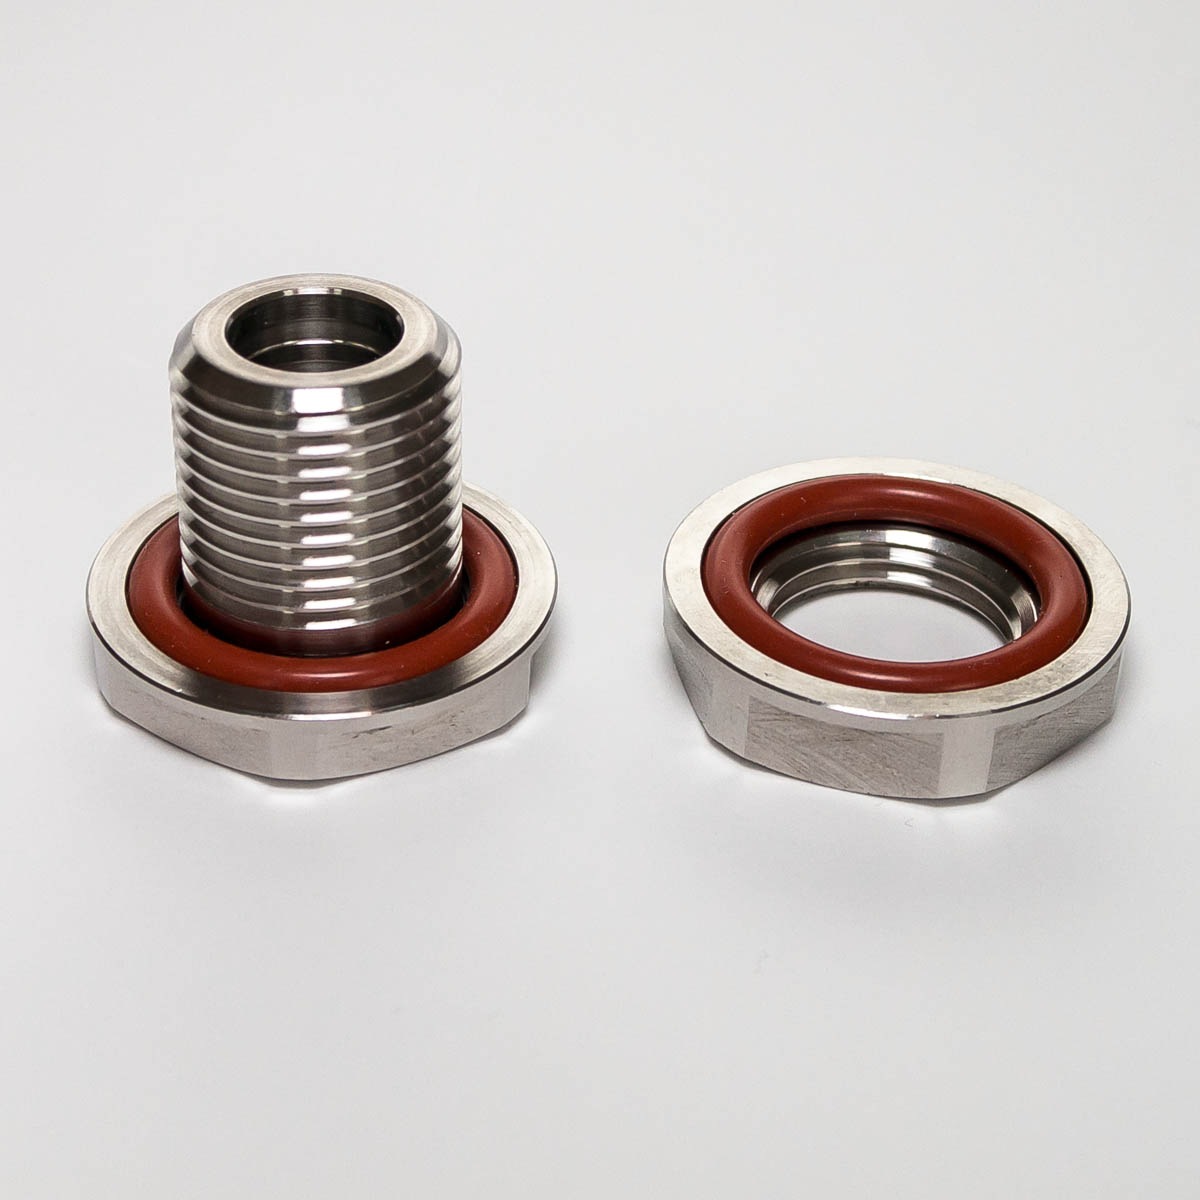 BrewPi Fitting and locknut